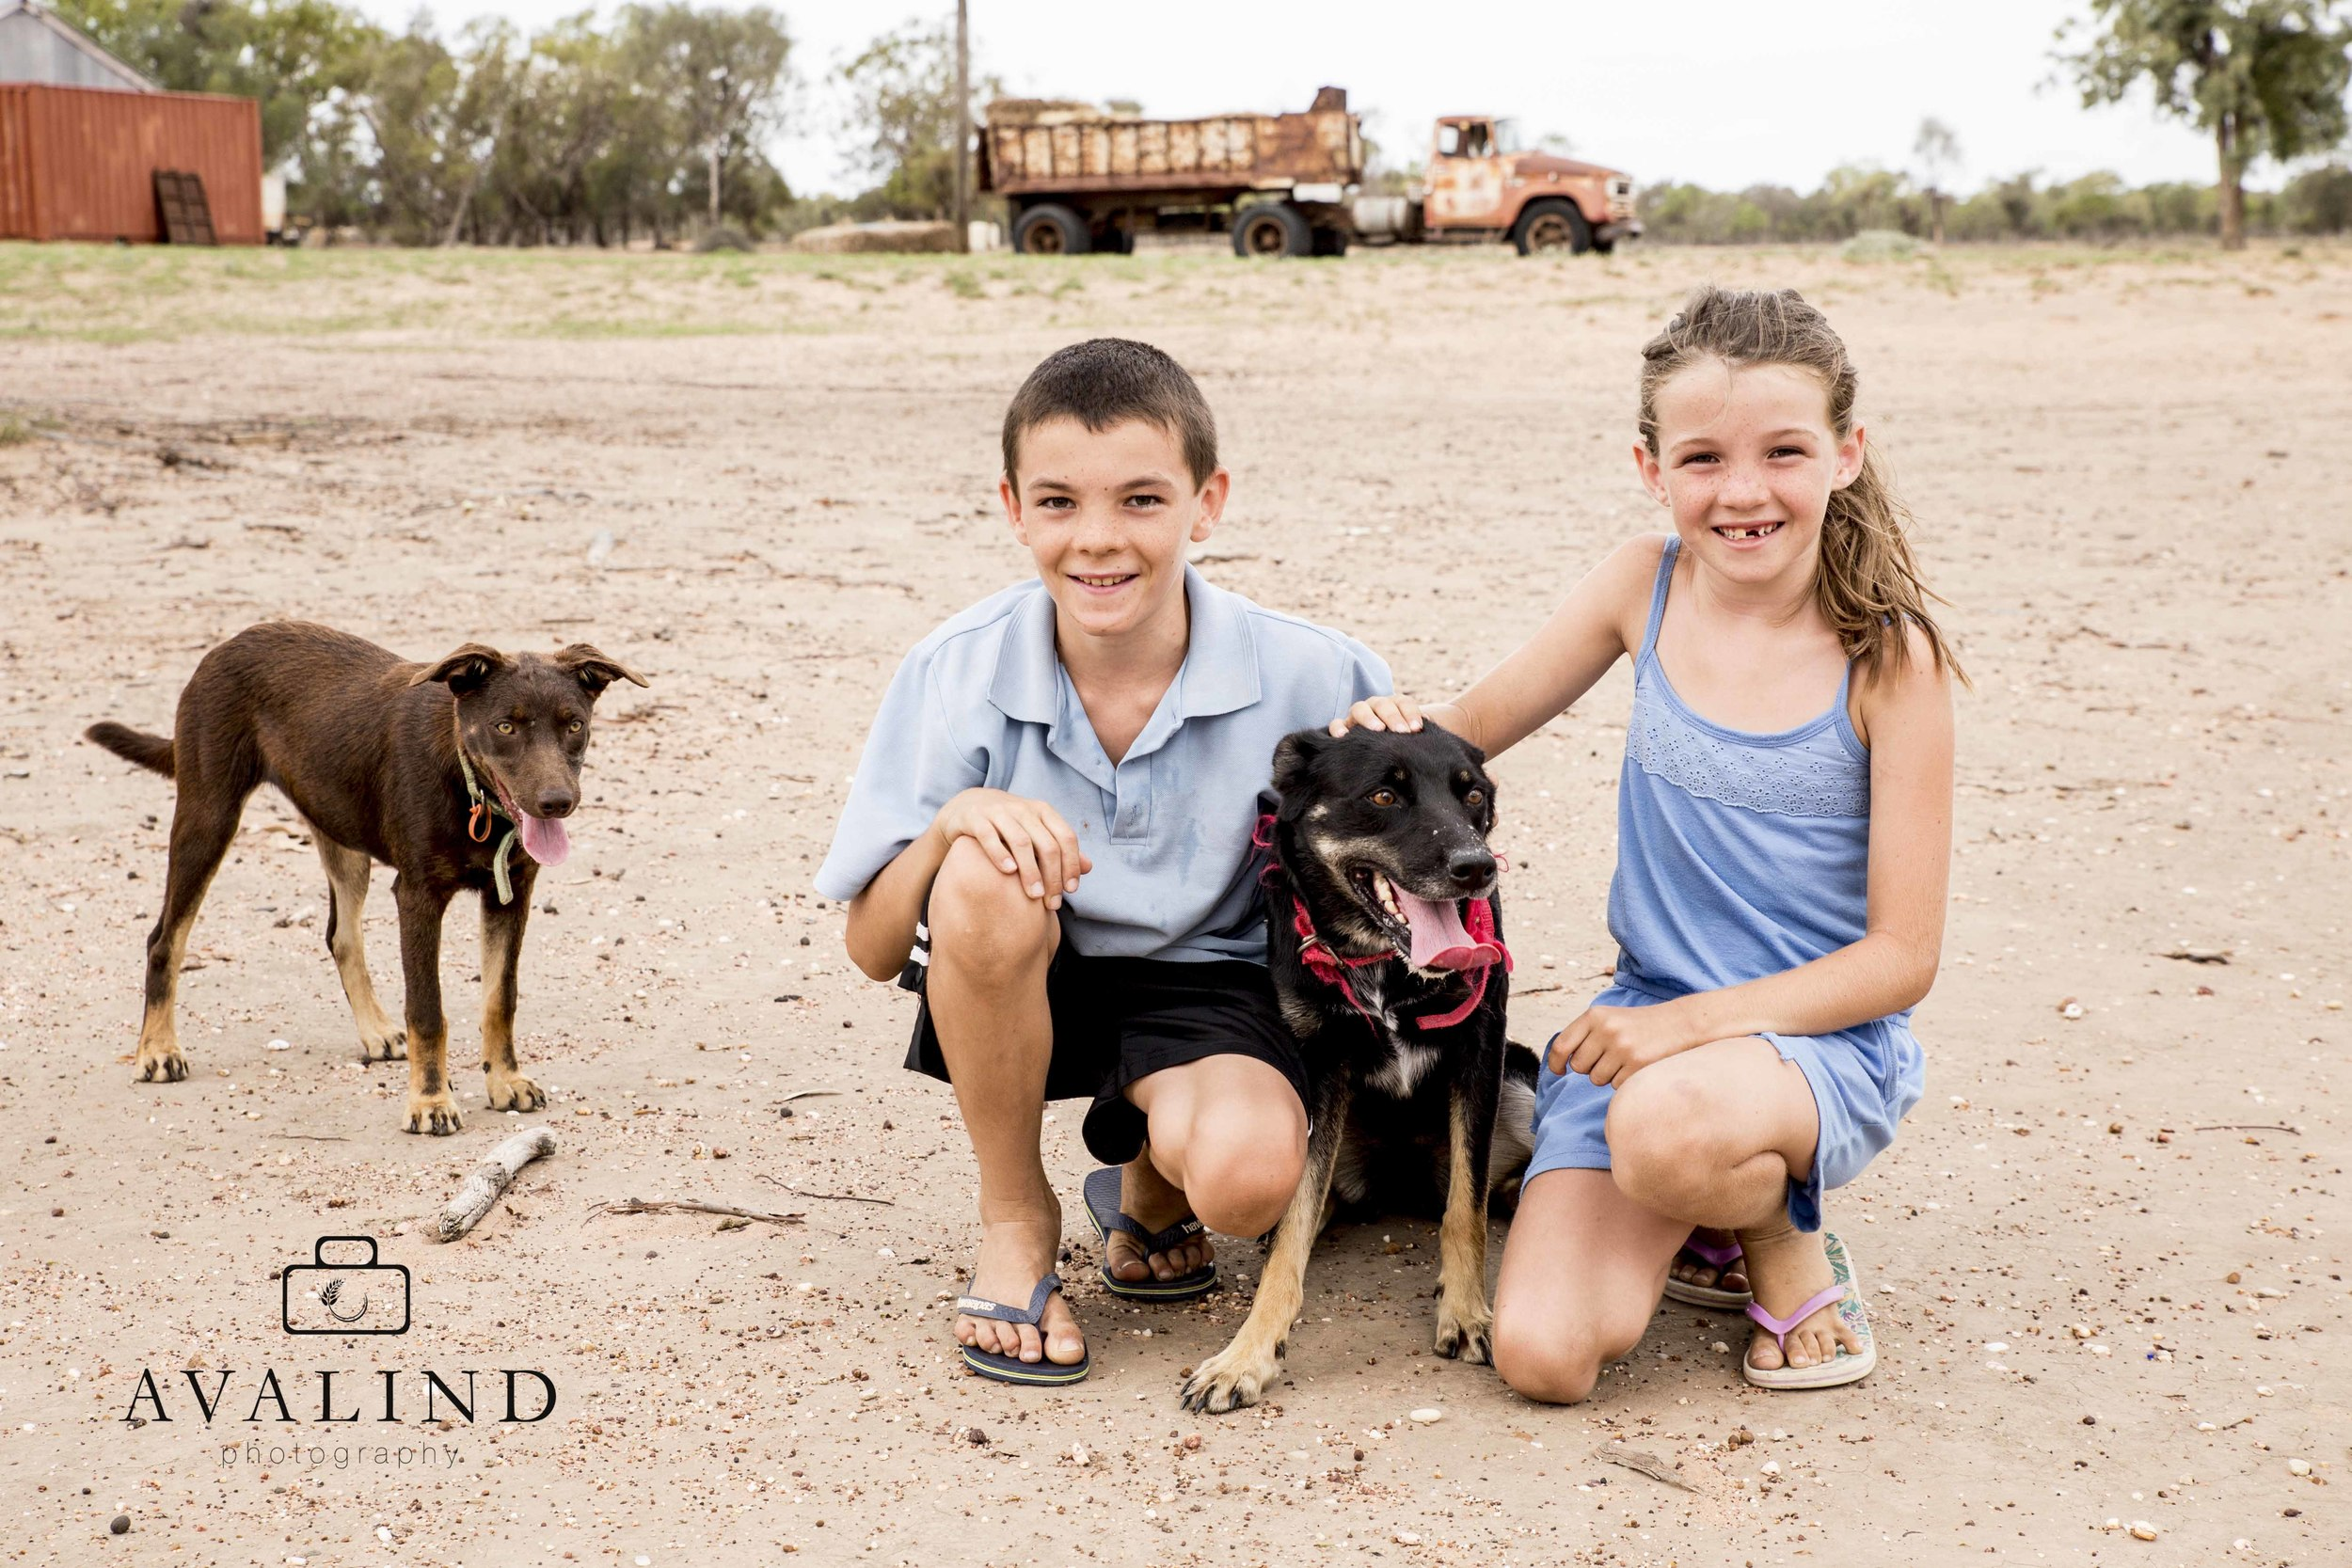 Michael & Victoria with best mates Sophie and Molly the kelpies. Two years ago the property was flooded in for months and it hasn't rained since.